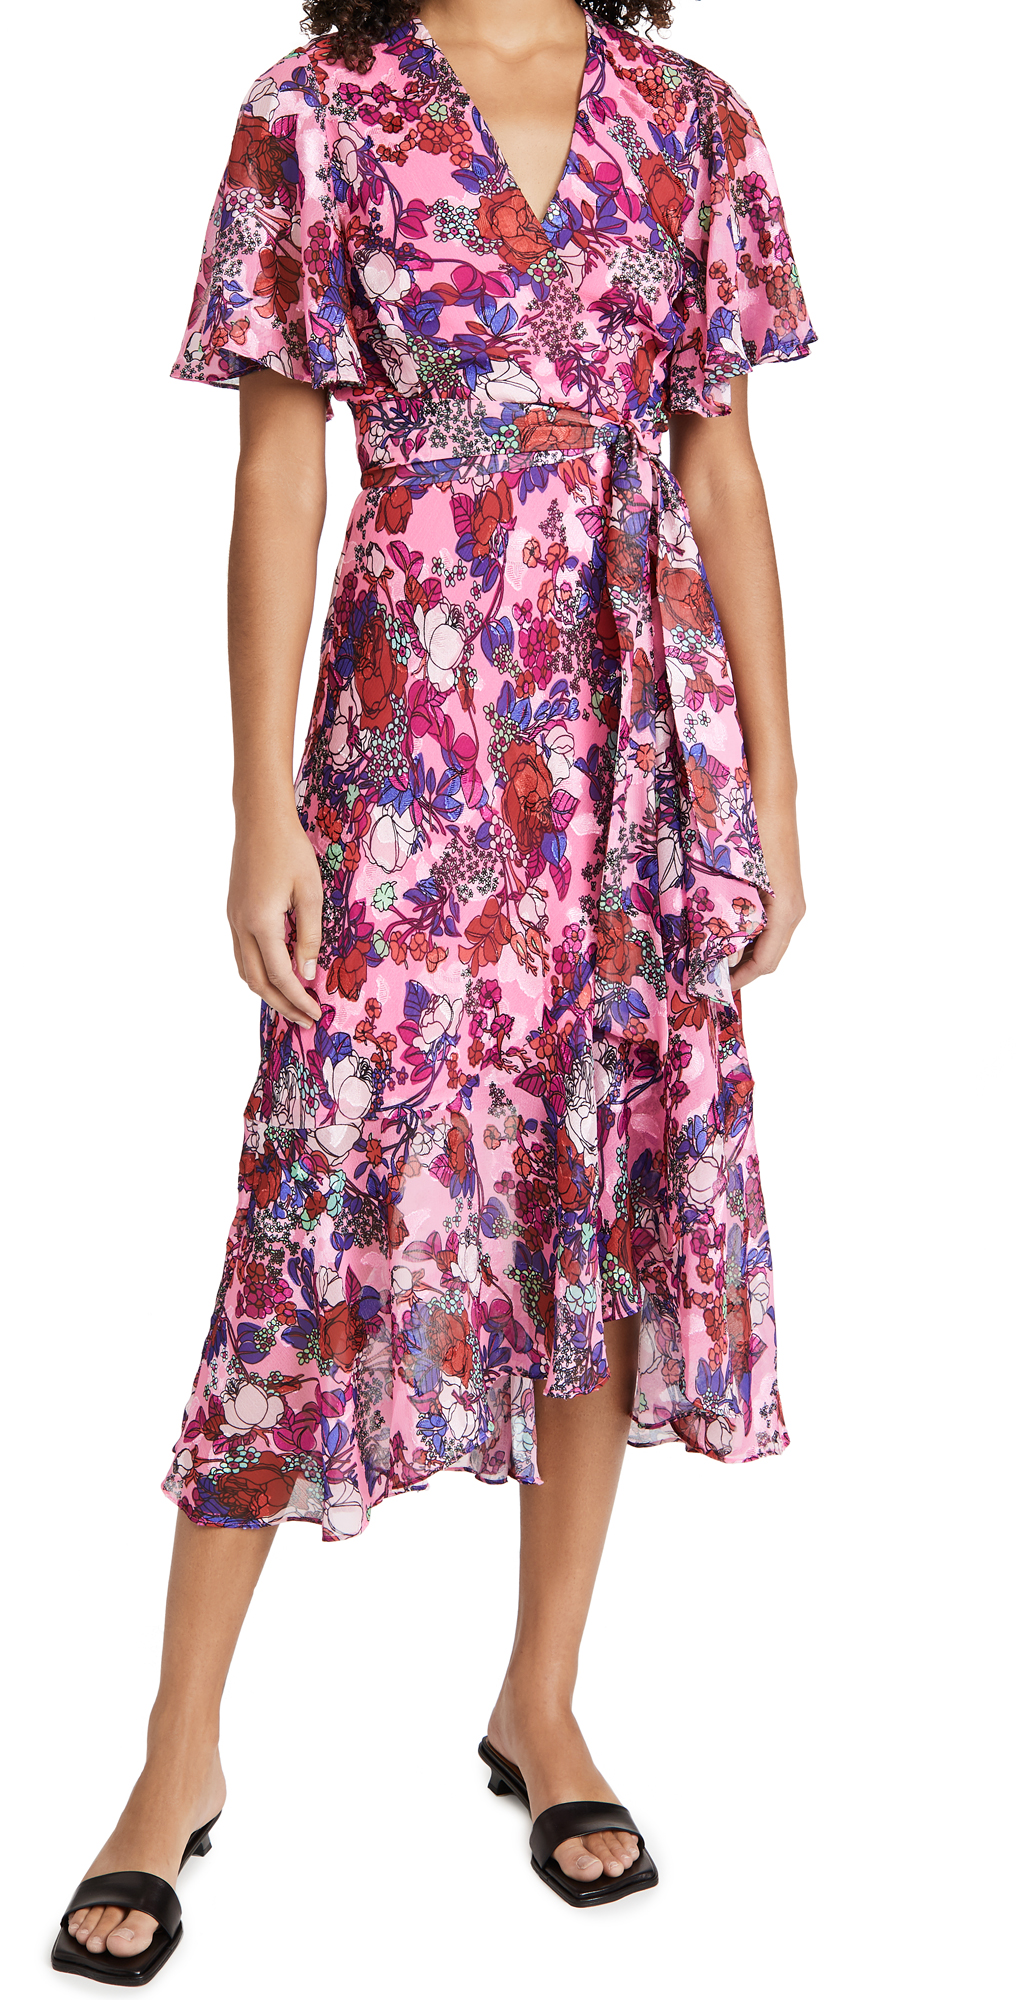 Tanya Taylor Blaire Dress